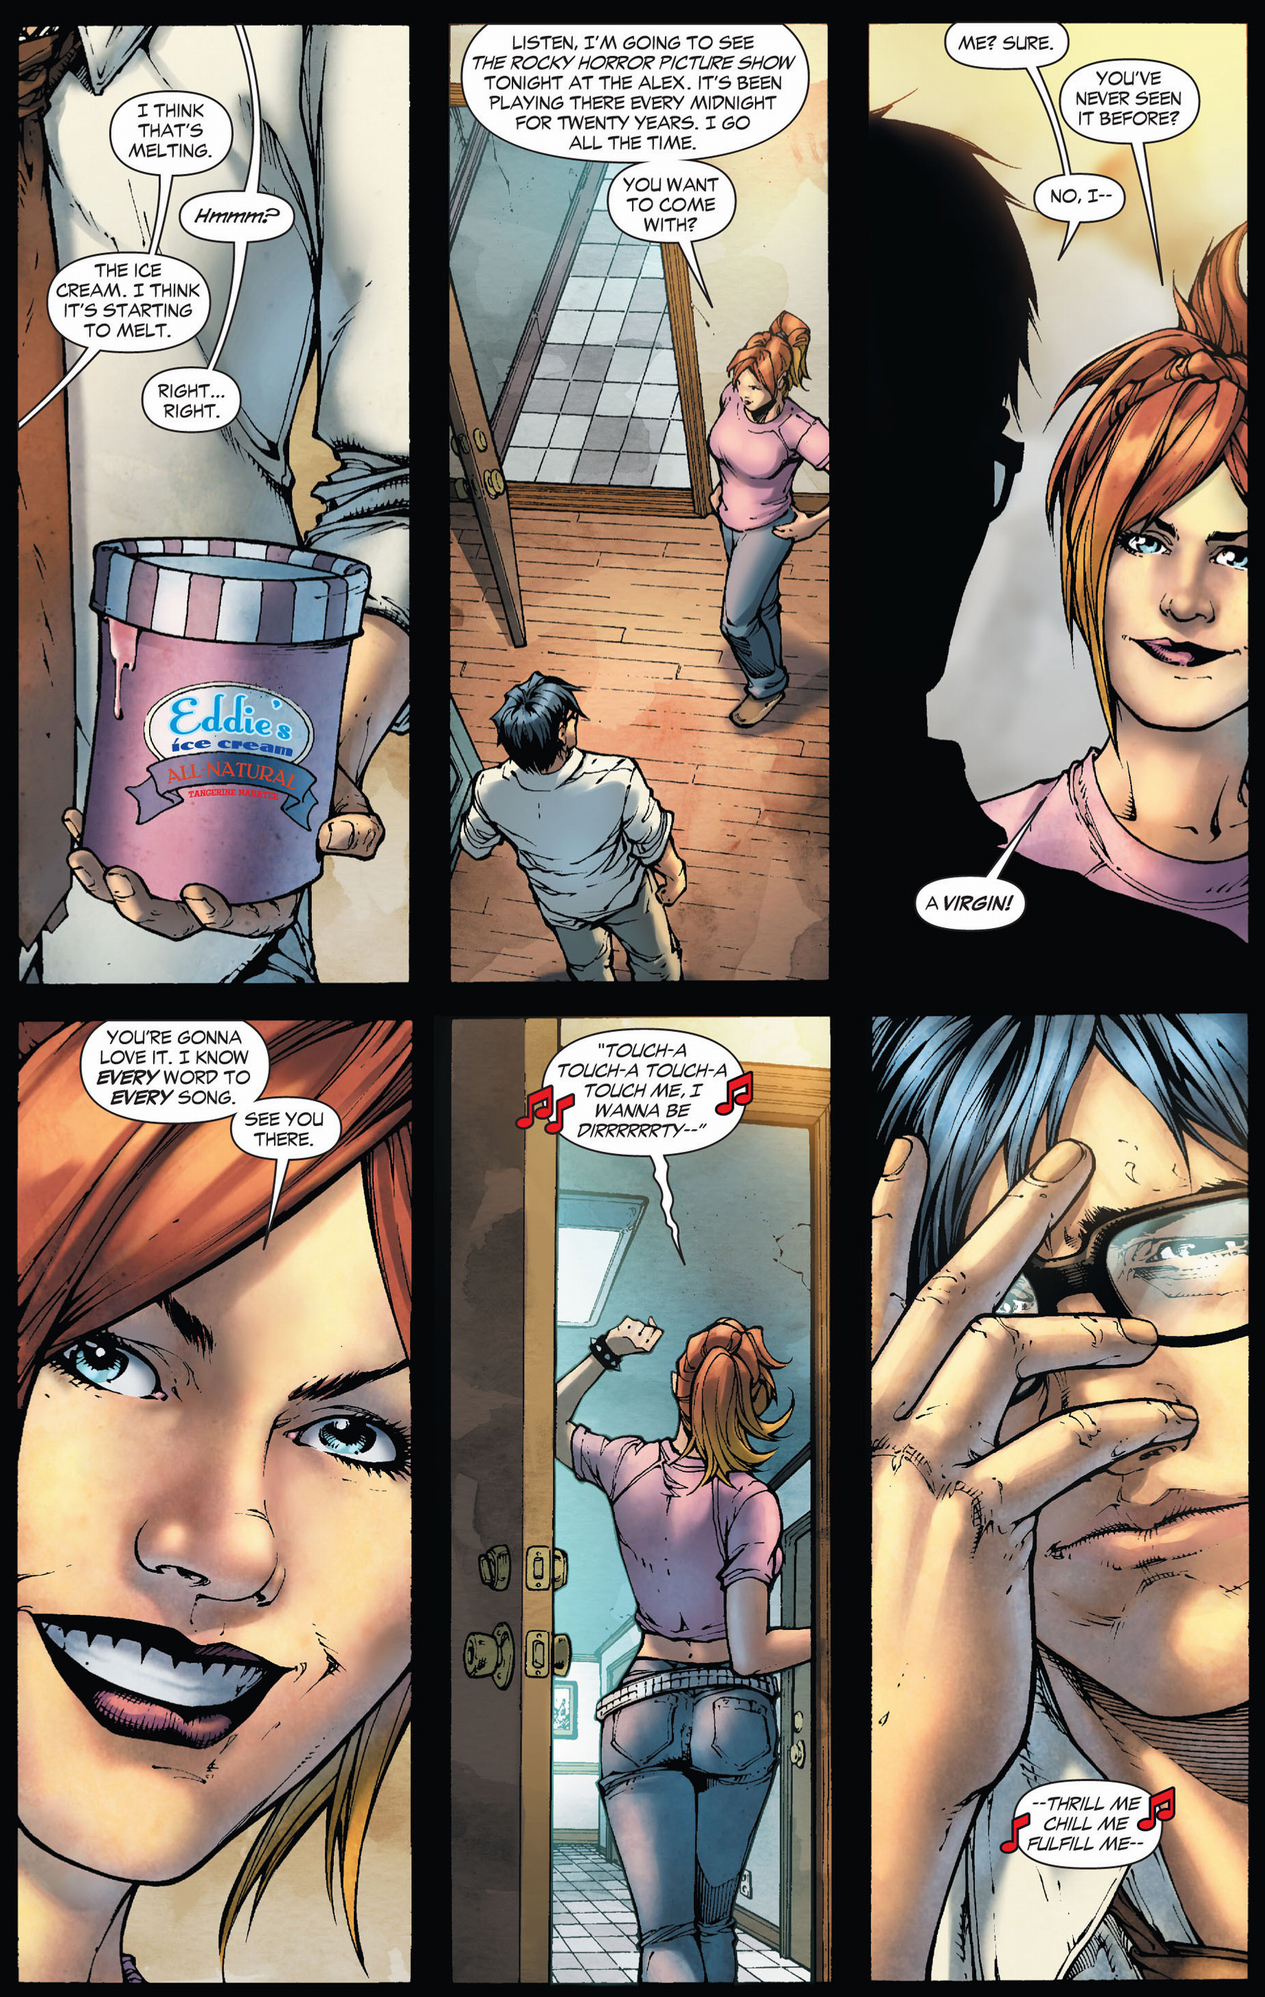 clark kent gets asked out on a date (earth 1)